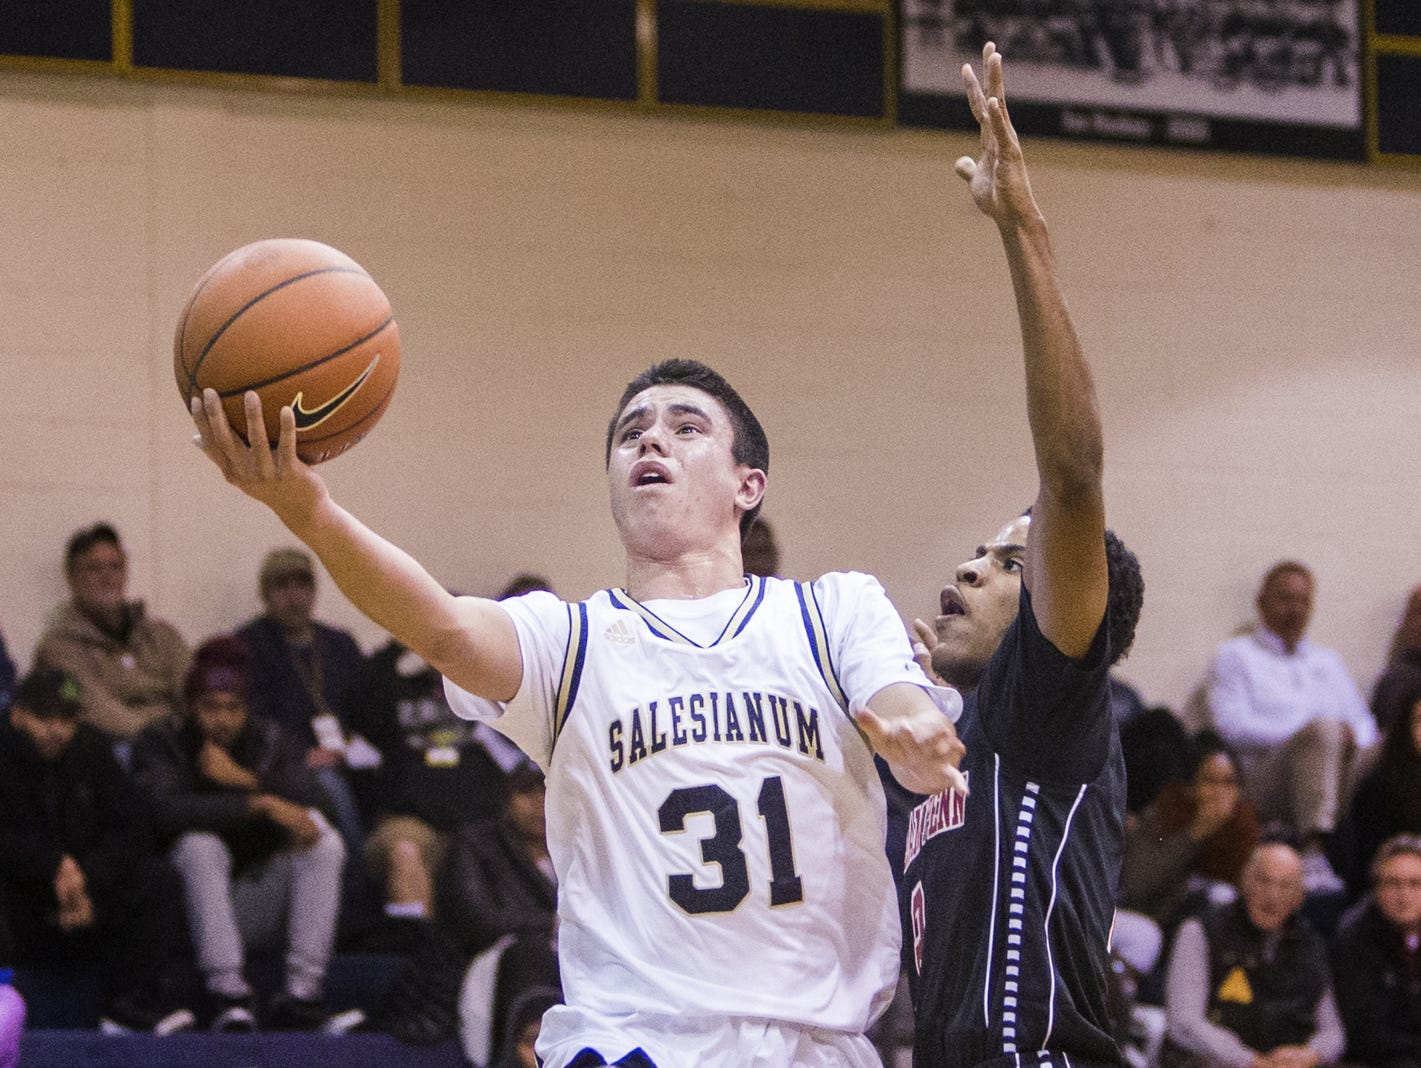 Salesianum's Michael Kempski scores against William Penn on Dec. 6. The Sals (10-5) have won three straight to move into The News Journal Top 10 at No. 8.